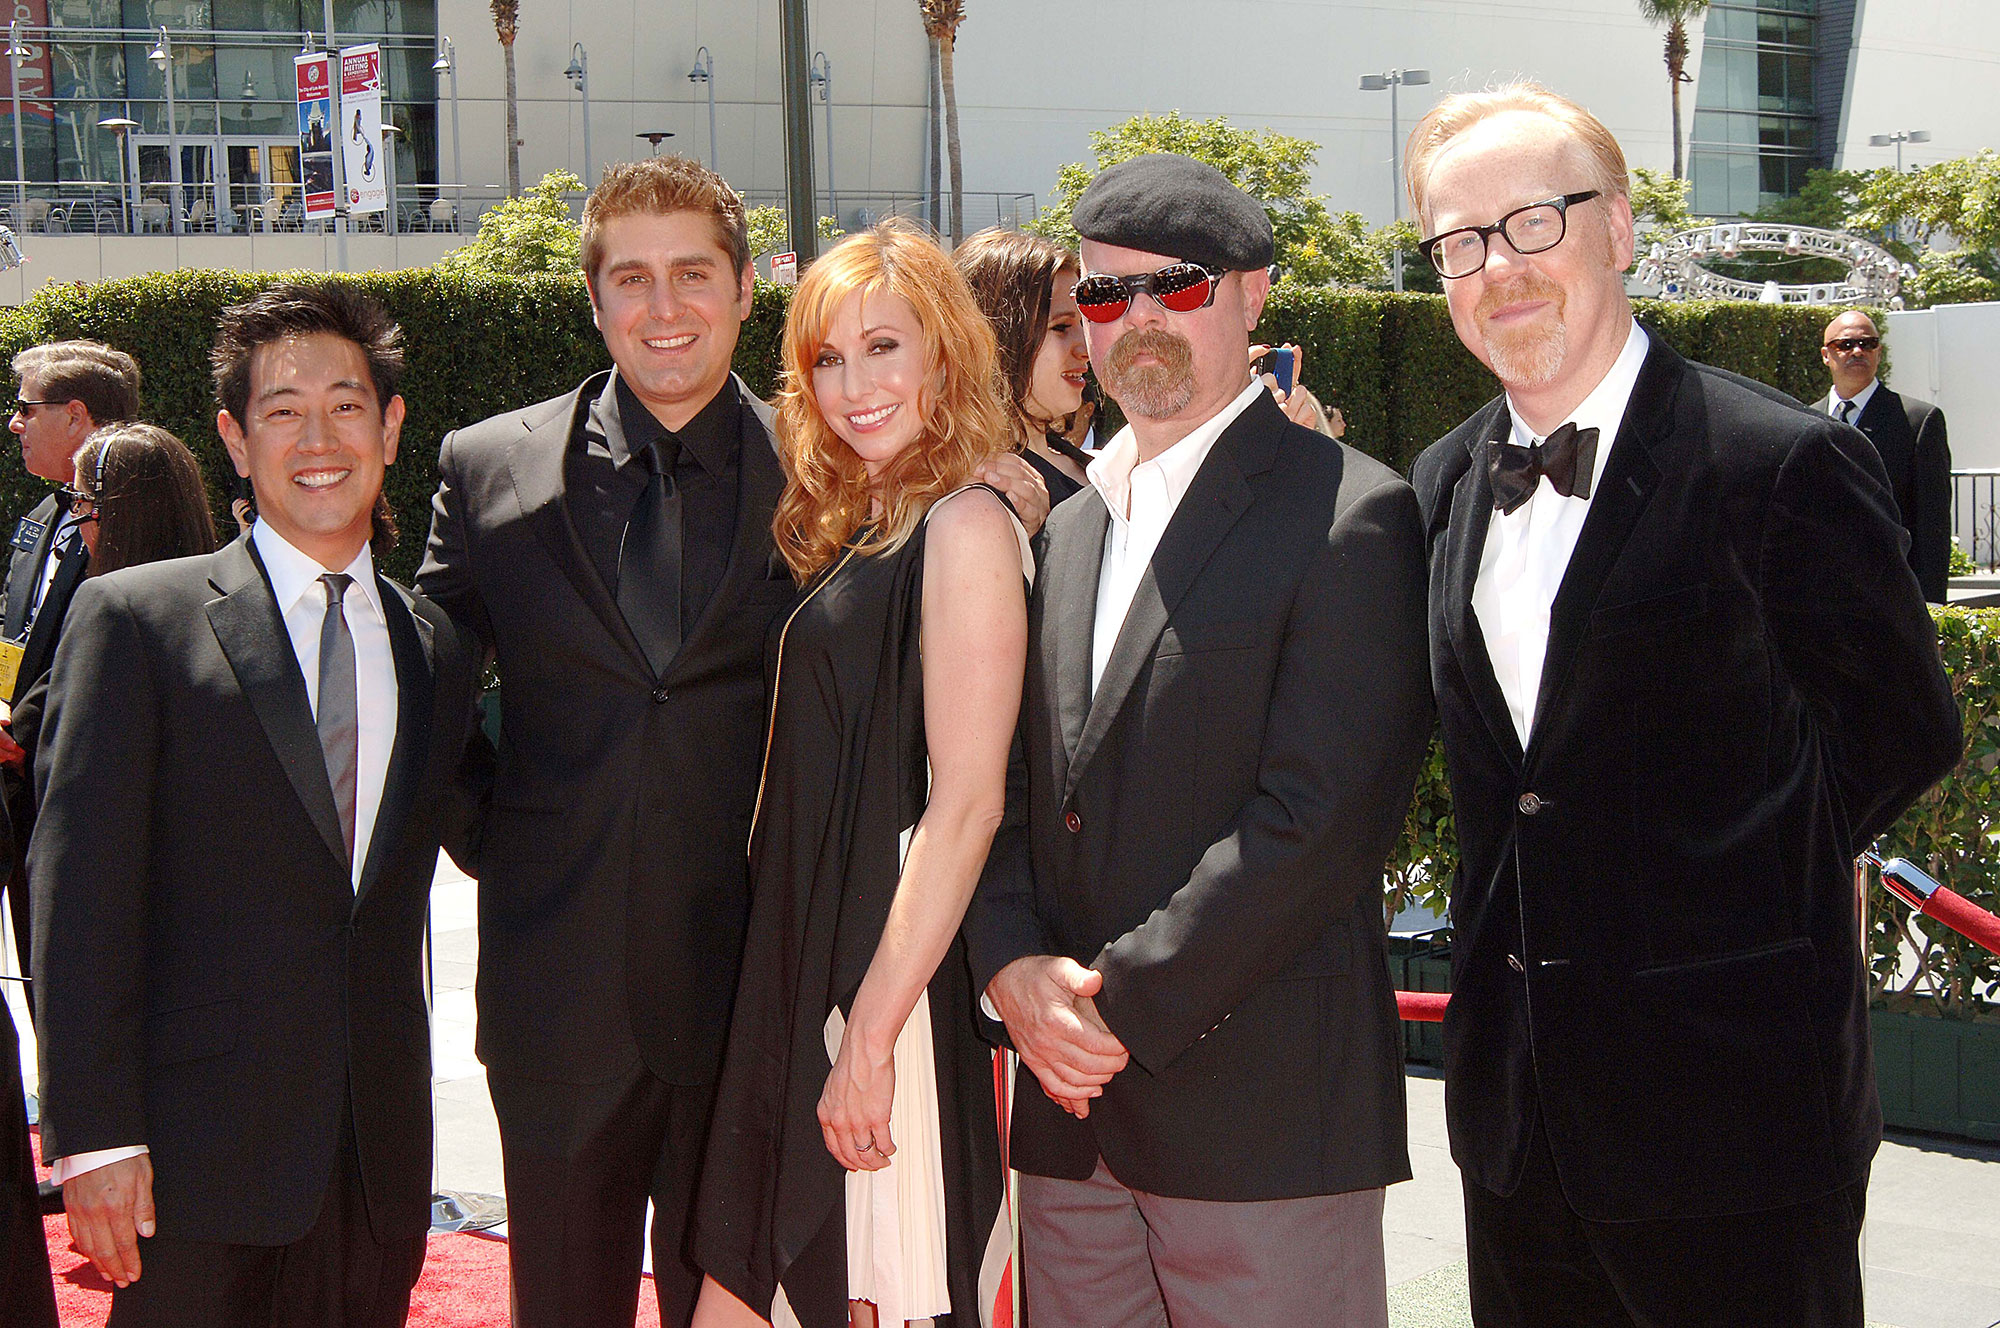 Grant Imahara Mythbusters Dead Cohosts Pay Tribute